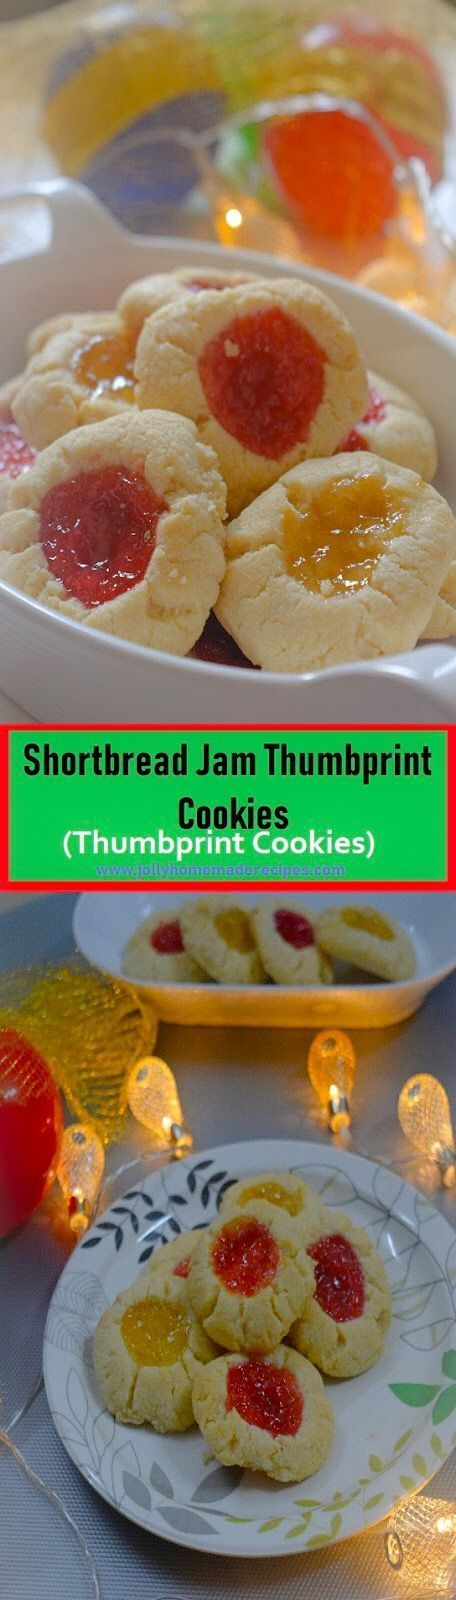 Shortbread Jam Thumbprint Cookies, How to make Jam Thumbprint Cookies #jamthumbprintcookies Shortbread Jam Thumbprint Cookies - These little thumbprint cookies are the perfect addition to any holiday cookie platter or Christmas time! #jamthumbprintcookies Shortbread Jam Thumbprint Cookies, How to make Jam Thumbprint Cookies #jamthumbprintcookies Shortbread Jam Thumbprint Cookies - These little thumbprint cookies are the perfect addition to any holiday cookie platter or Christmas time! #jamthumbp #jamthumbprintcookies